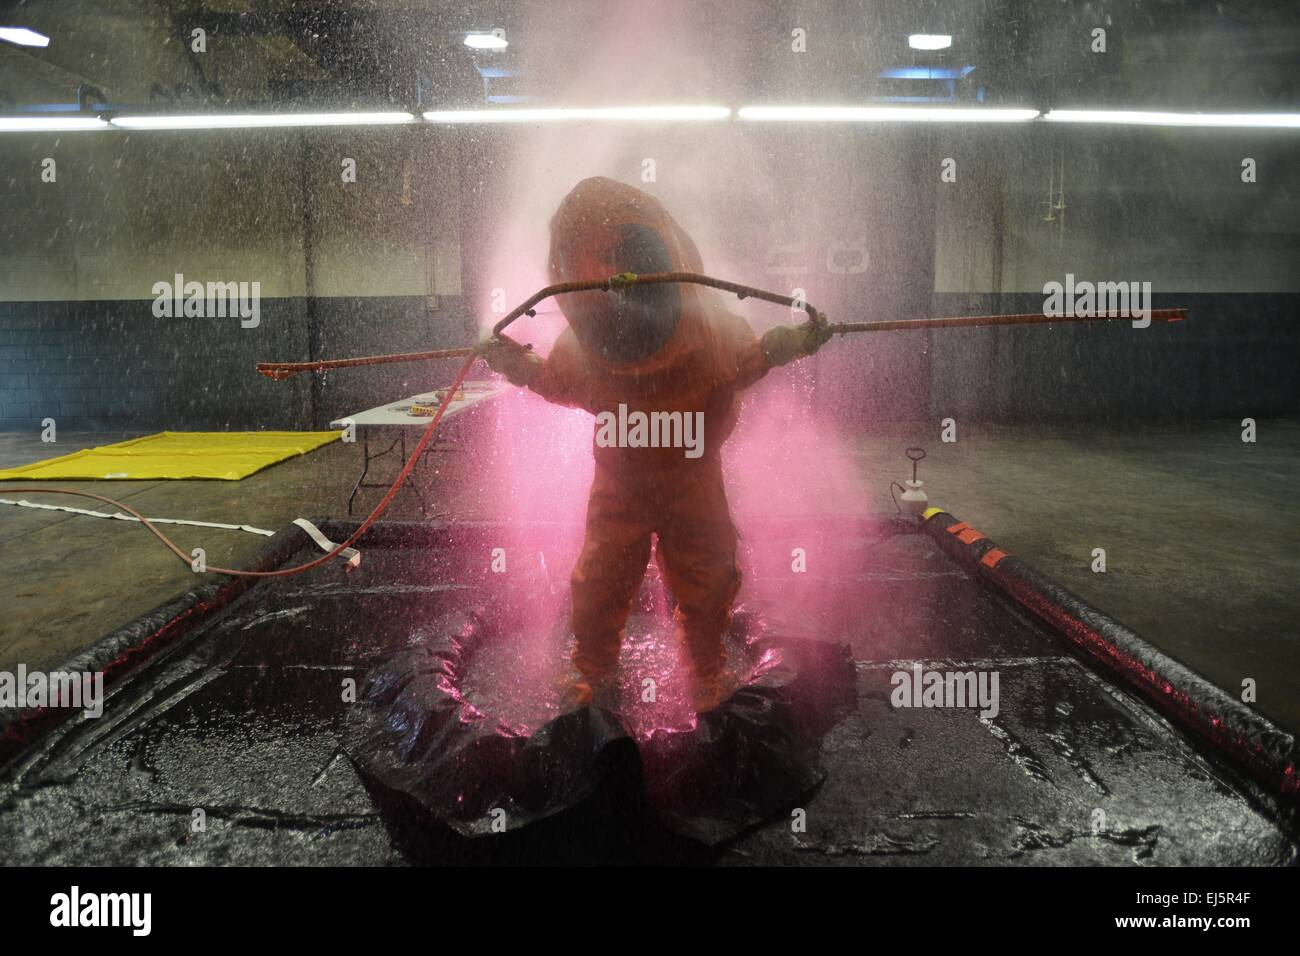 A US Air Force airman is decontaminated during multiple biological contaminants simulation training March 18, 2015 - Stock Image